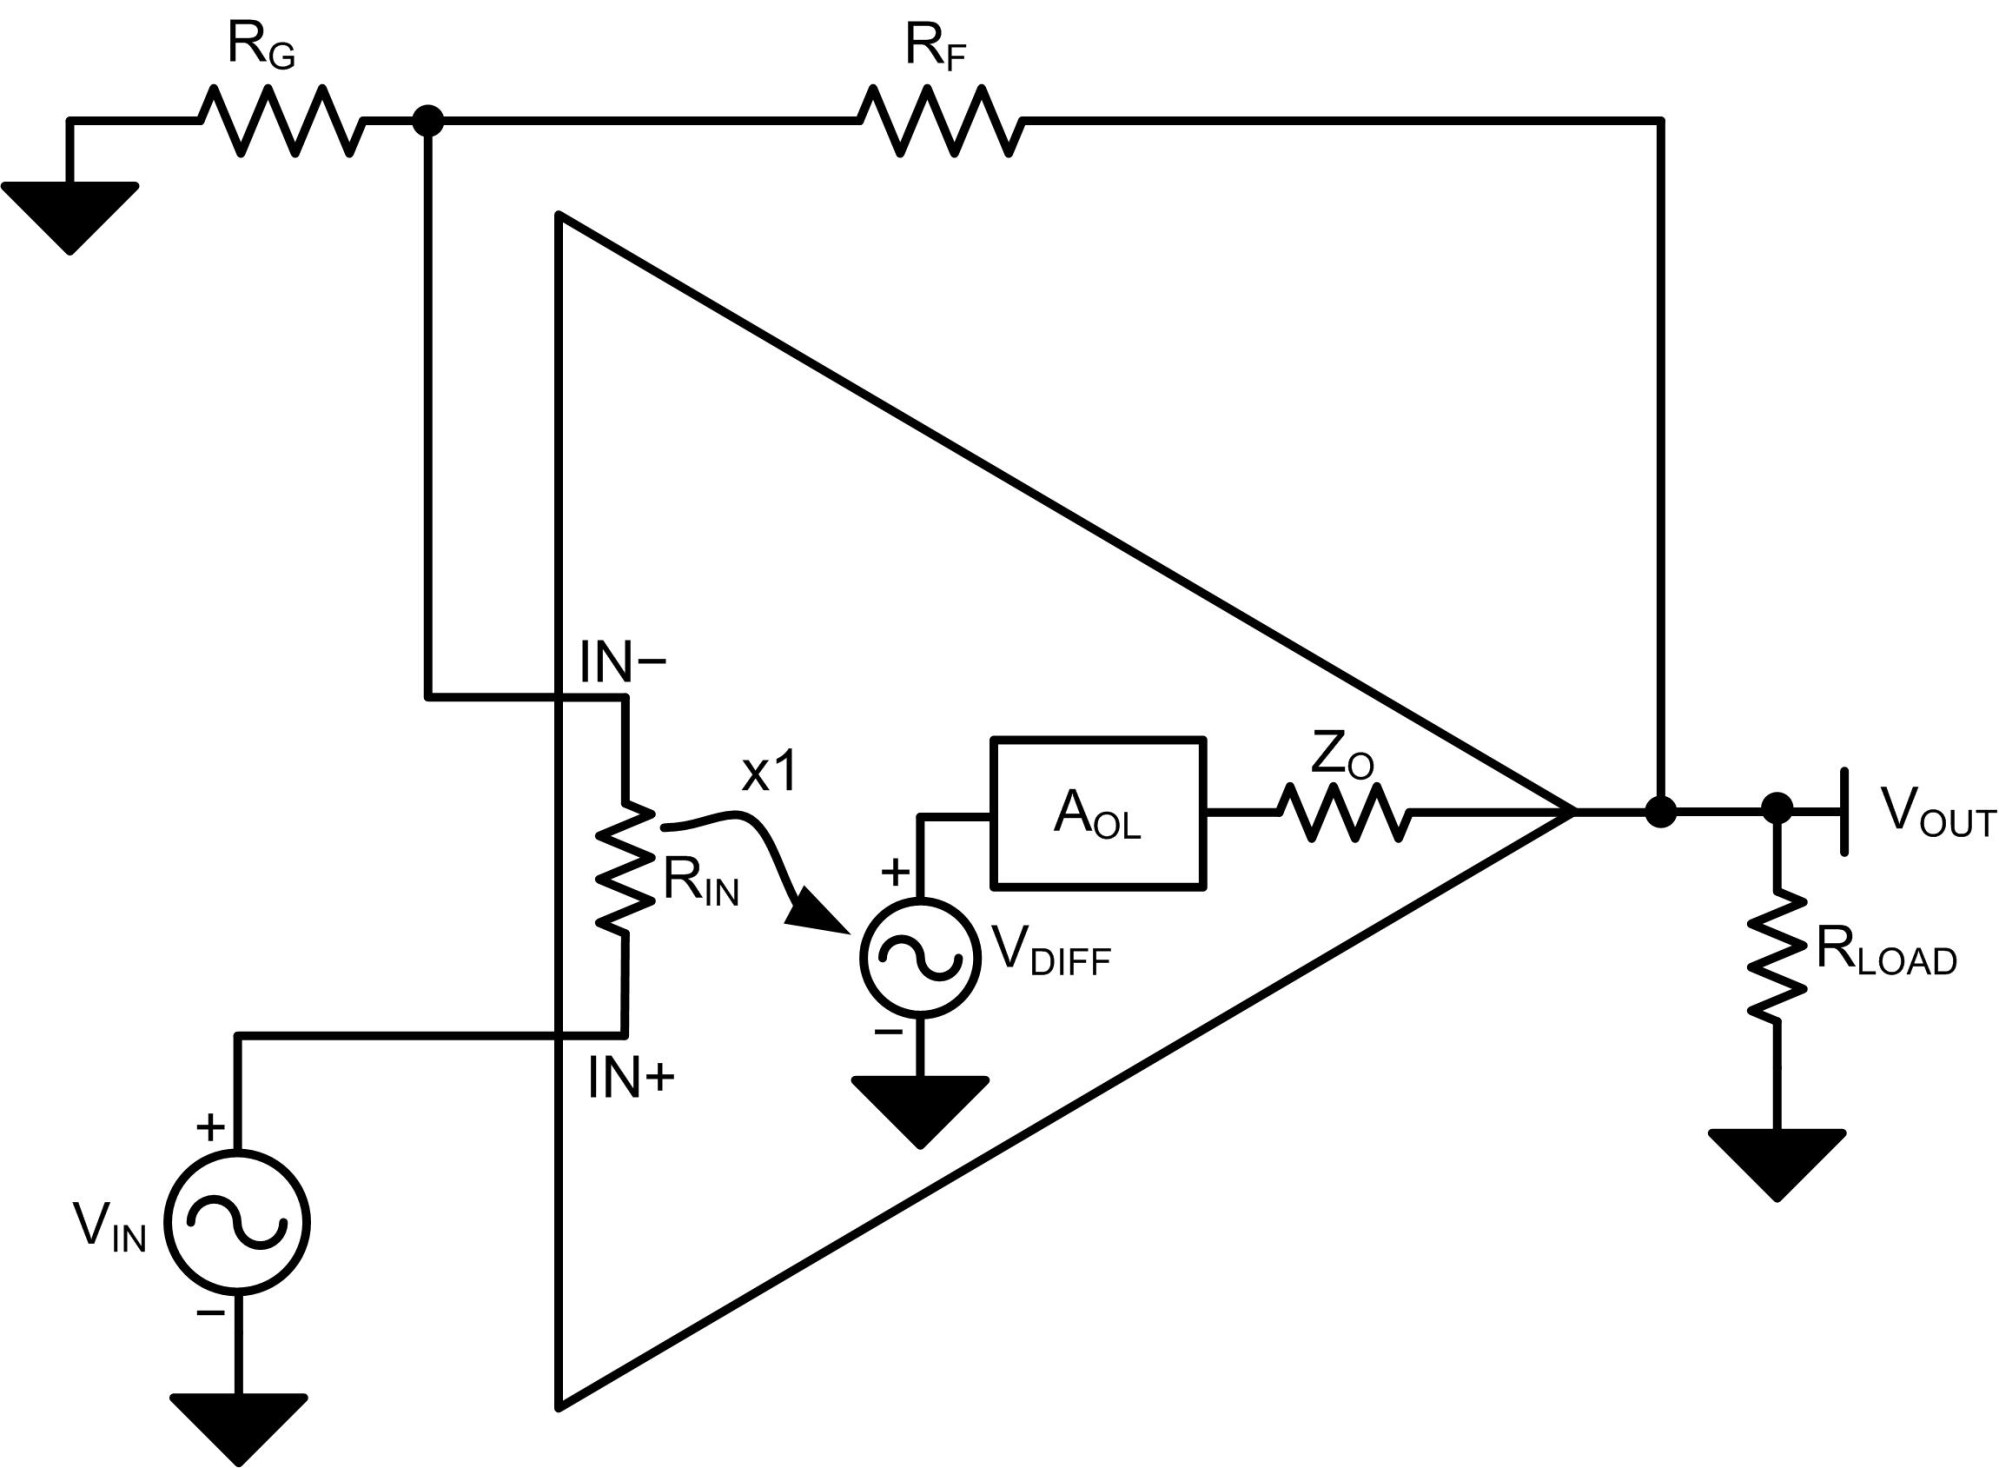 hight resolution of figure 1 simplified small signal op amp ac model